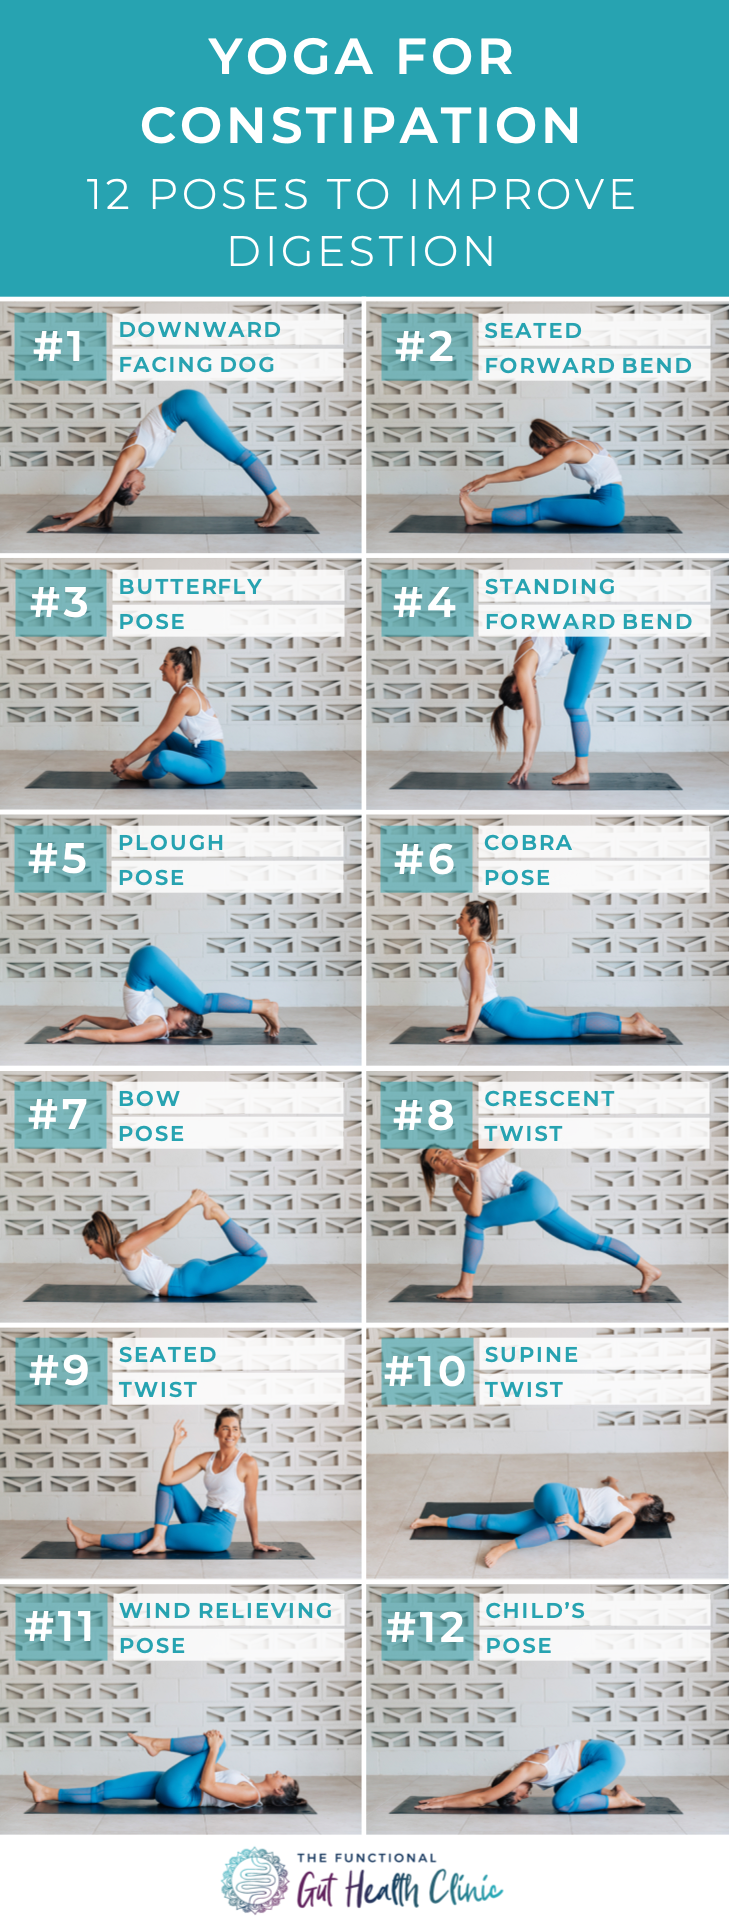 Yoga for constipation_Pinterest_2.png